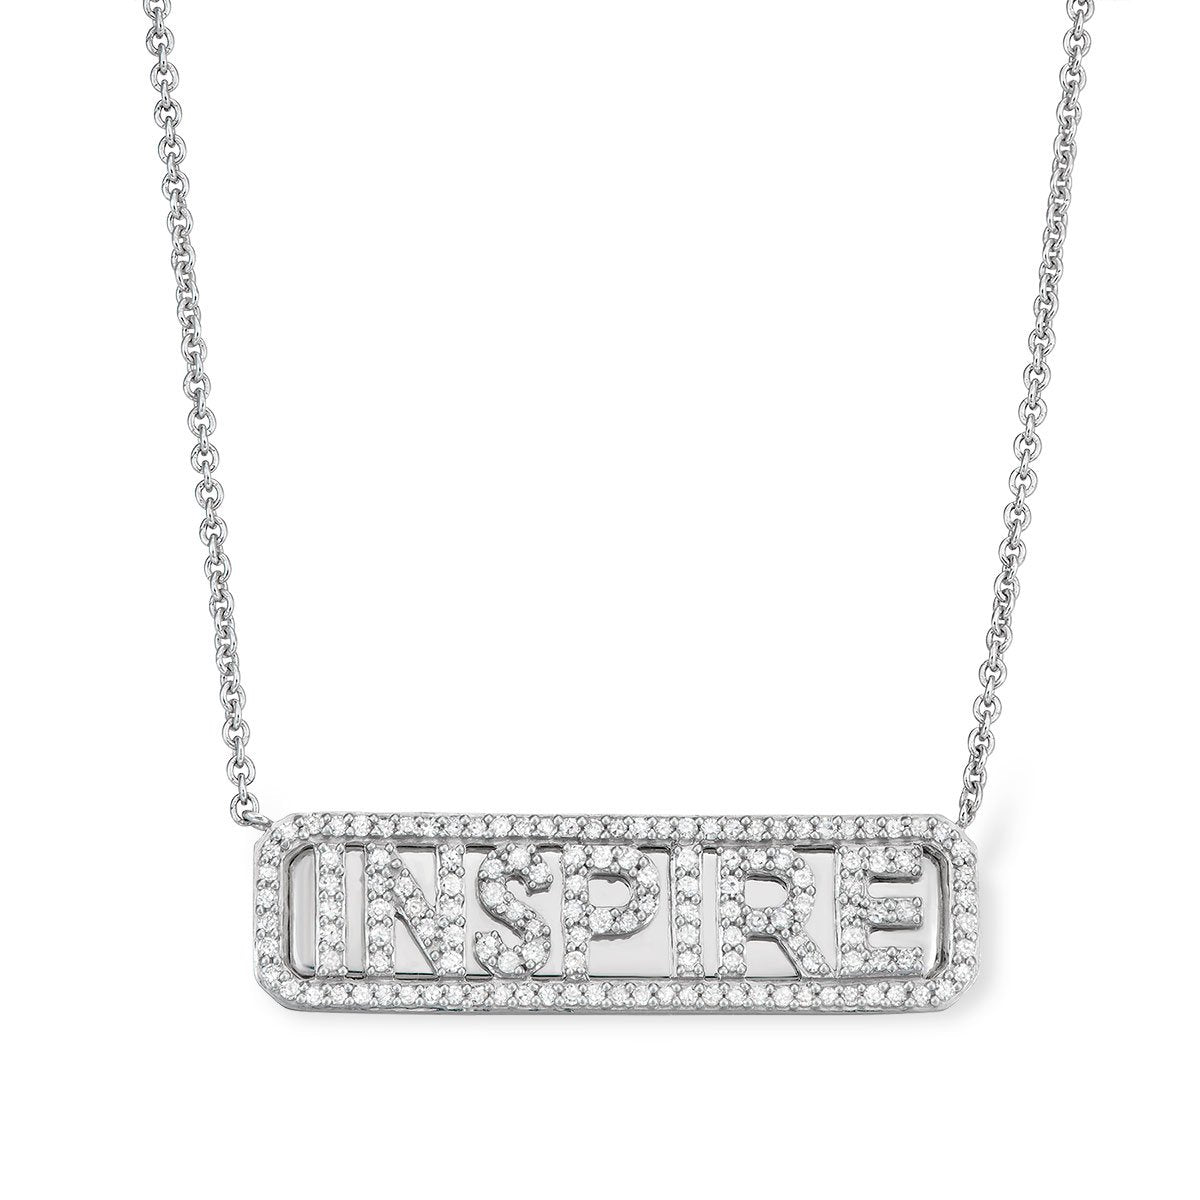 Silver 'Inspire' ID Necklace - Serena Williams Jewelry